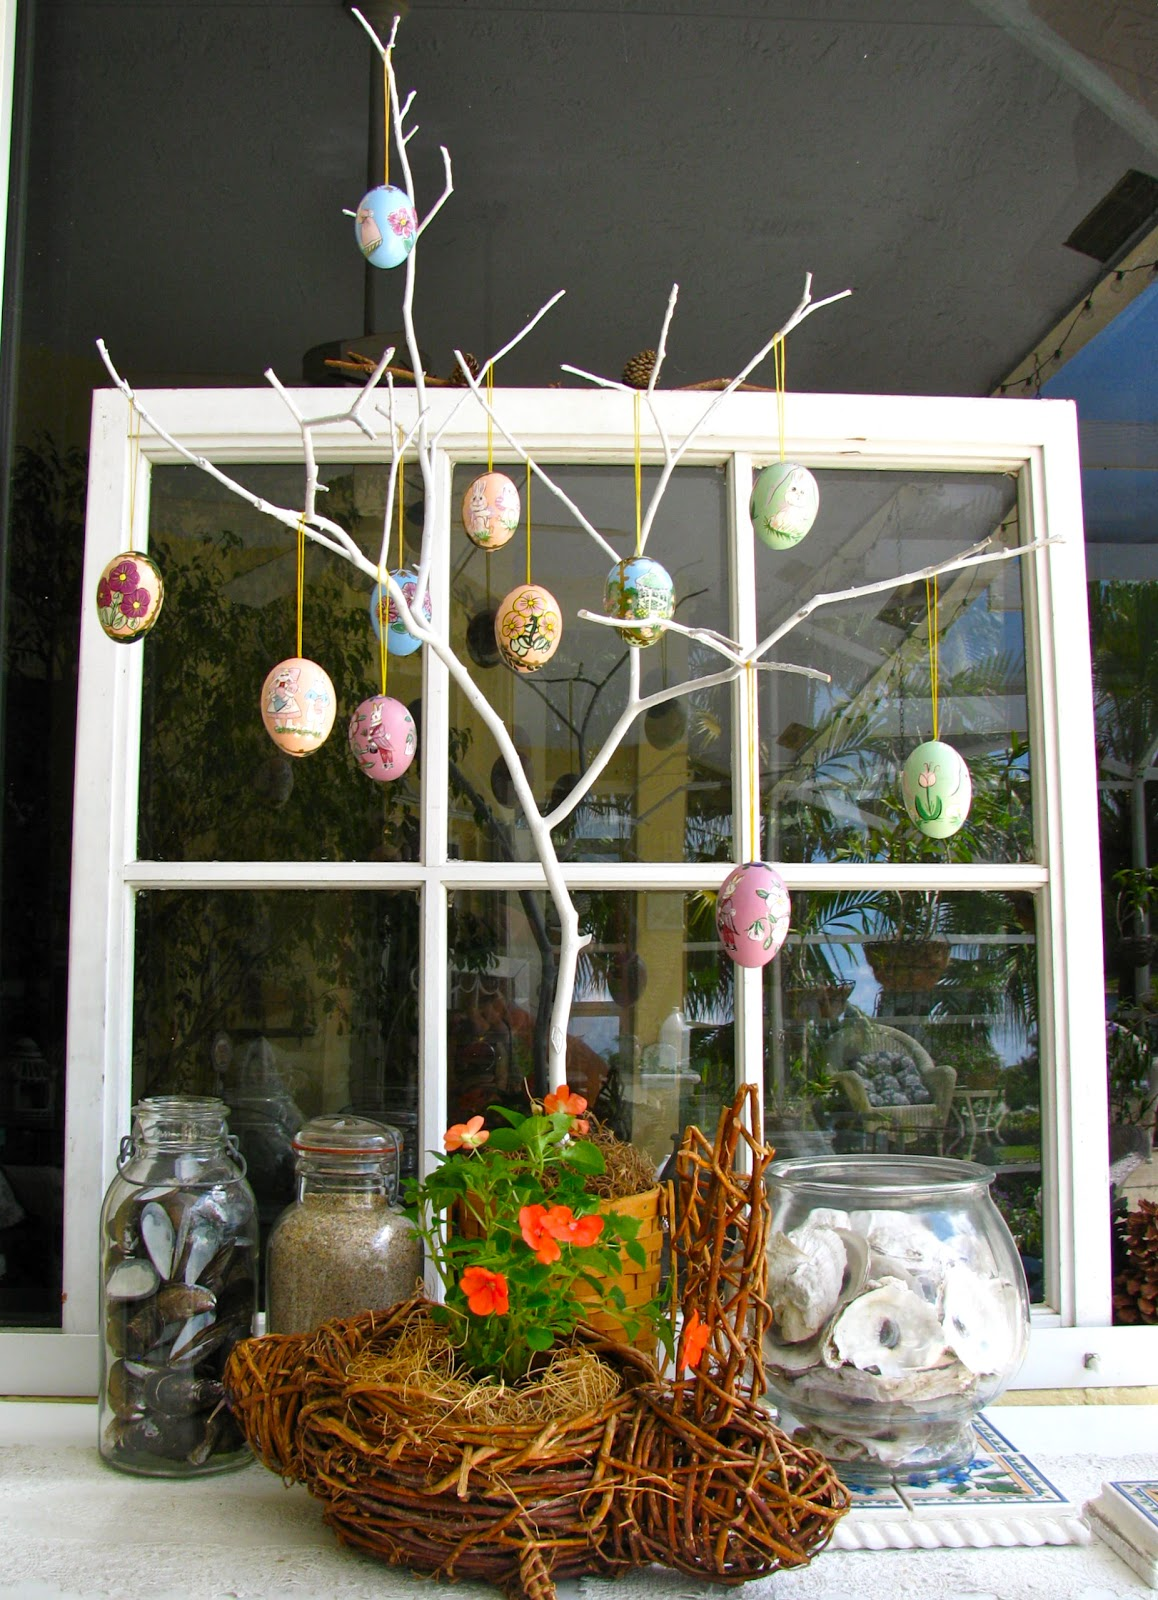 May days diy easter egg tree How to make an easter egg tree